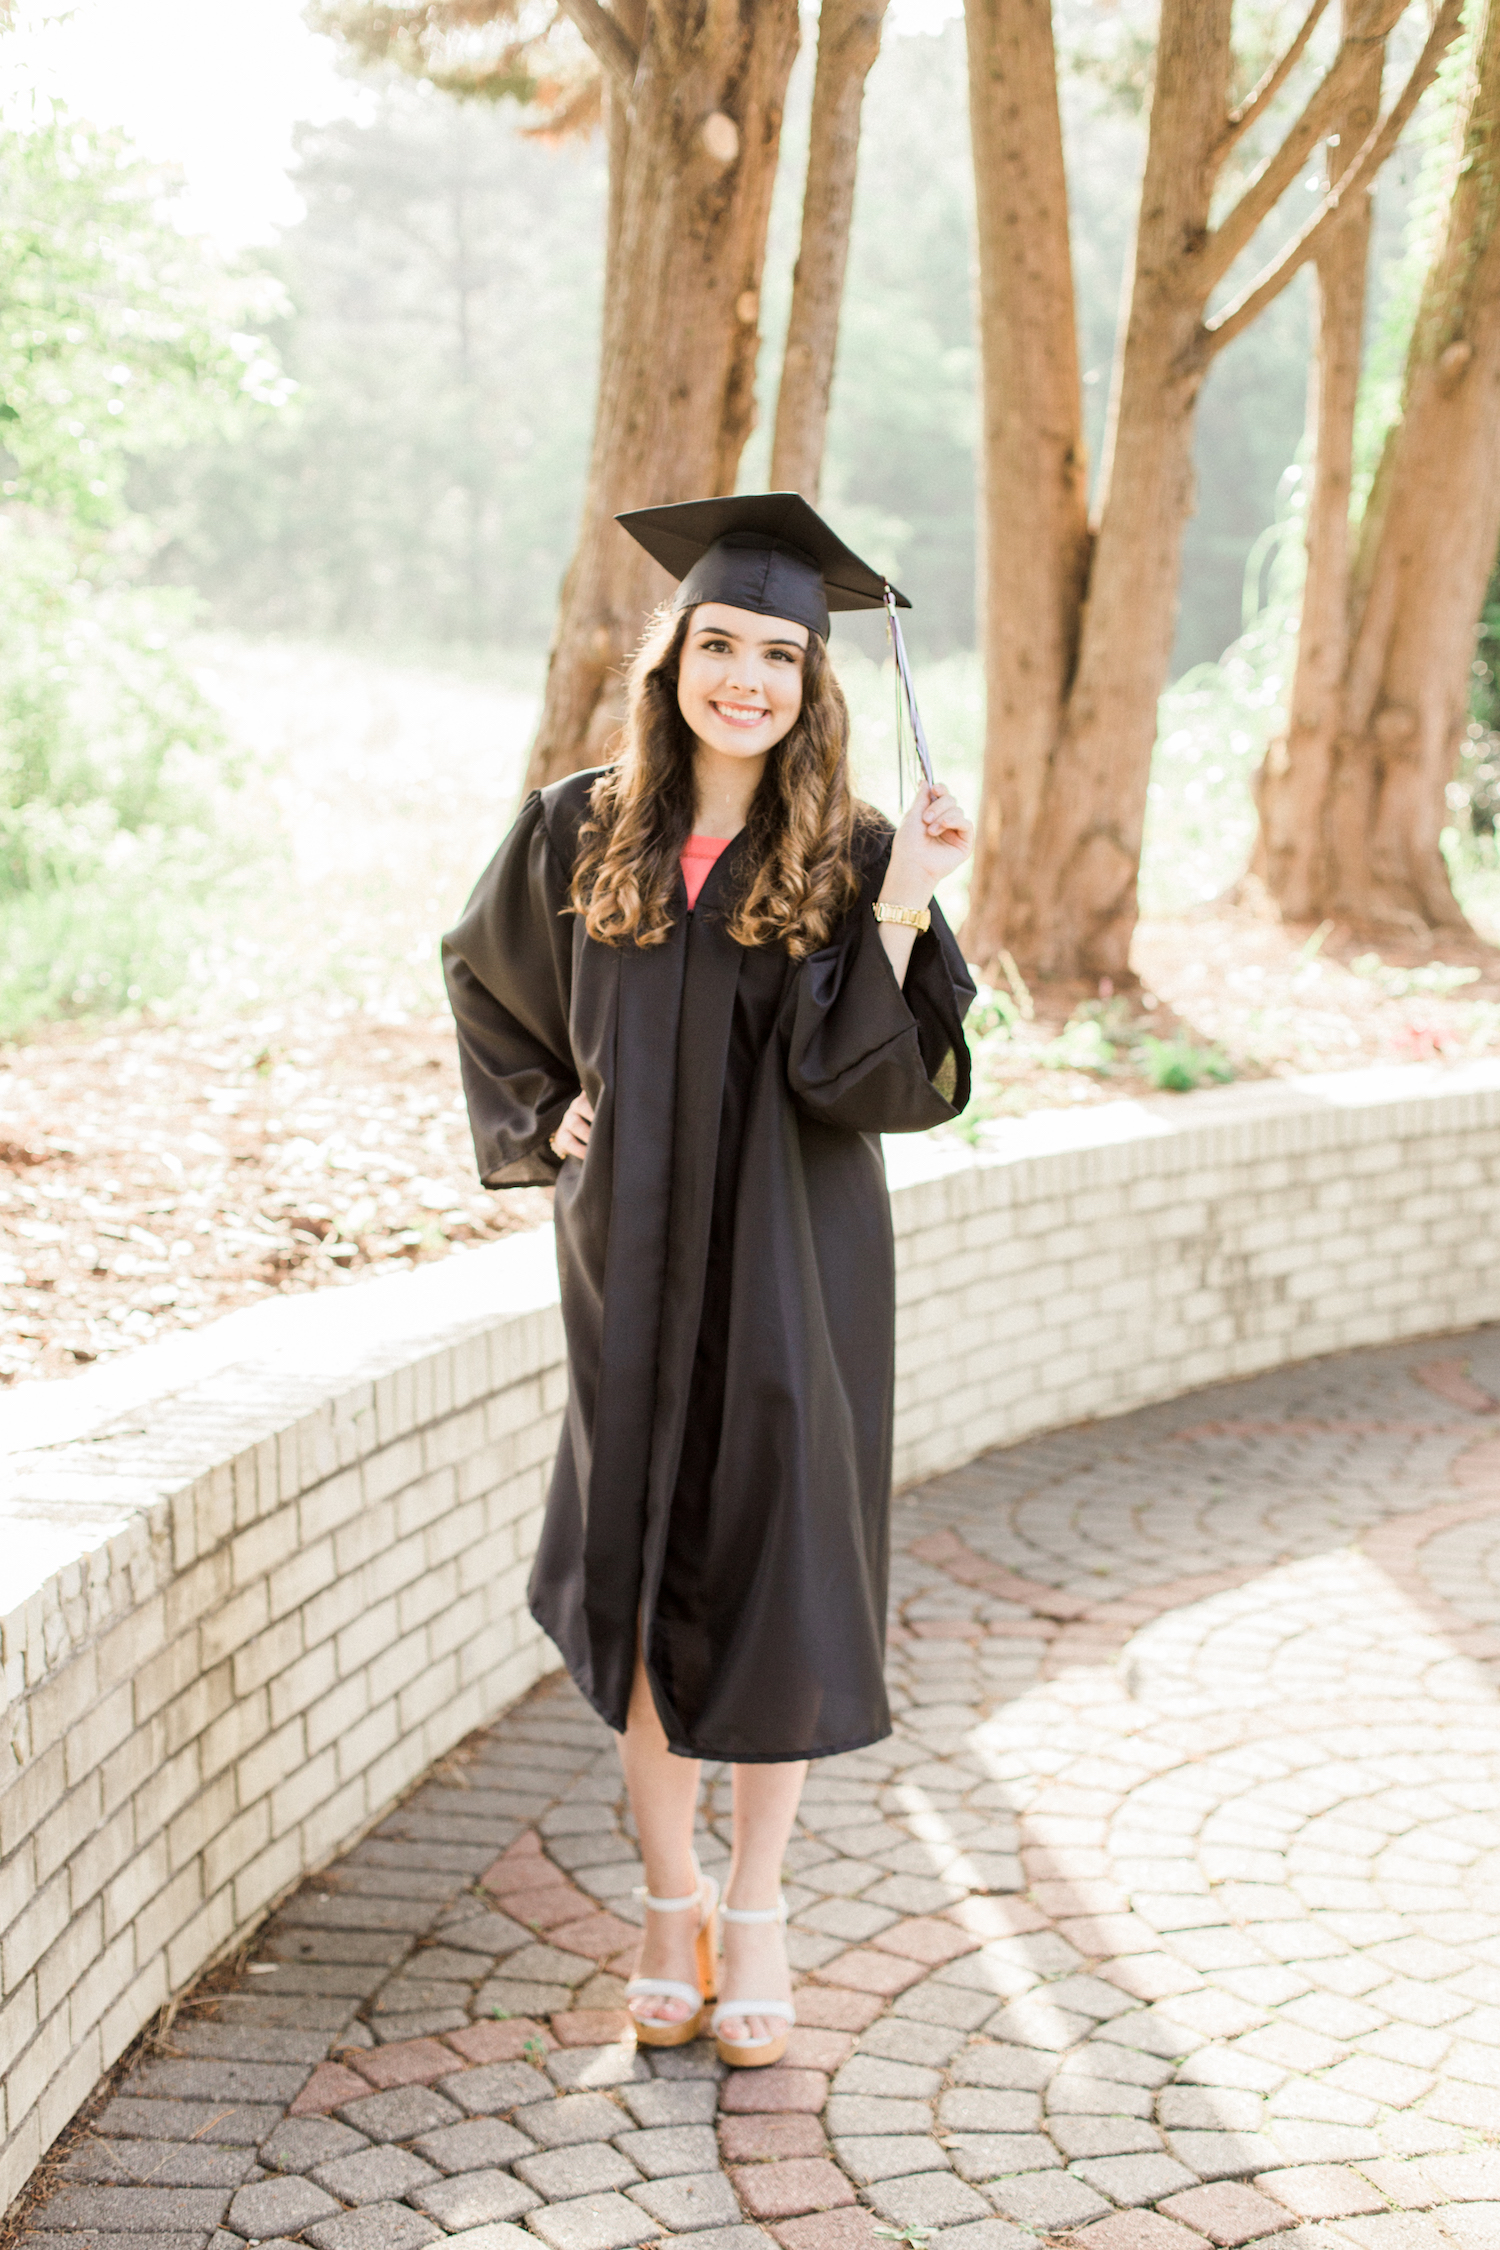 Summer time high school senior session at Vine Mansion Park by Kesia Marie Photography. Featuring feminine, garden details. Senior photos in graduation cap and gown.